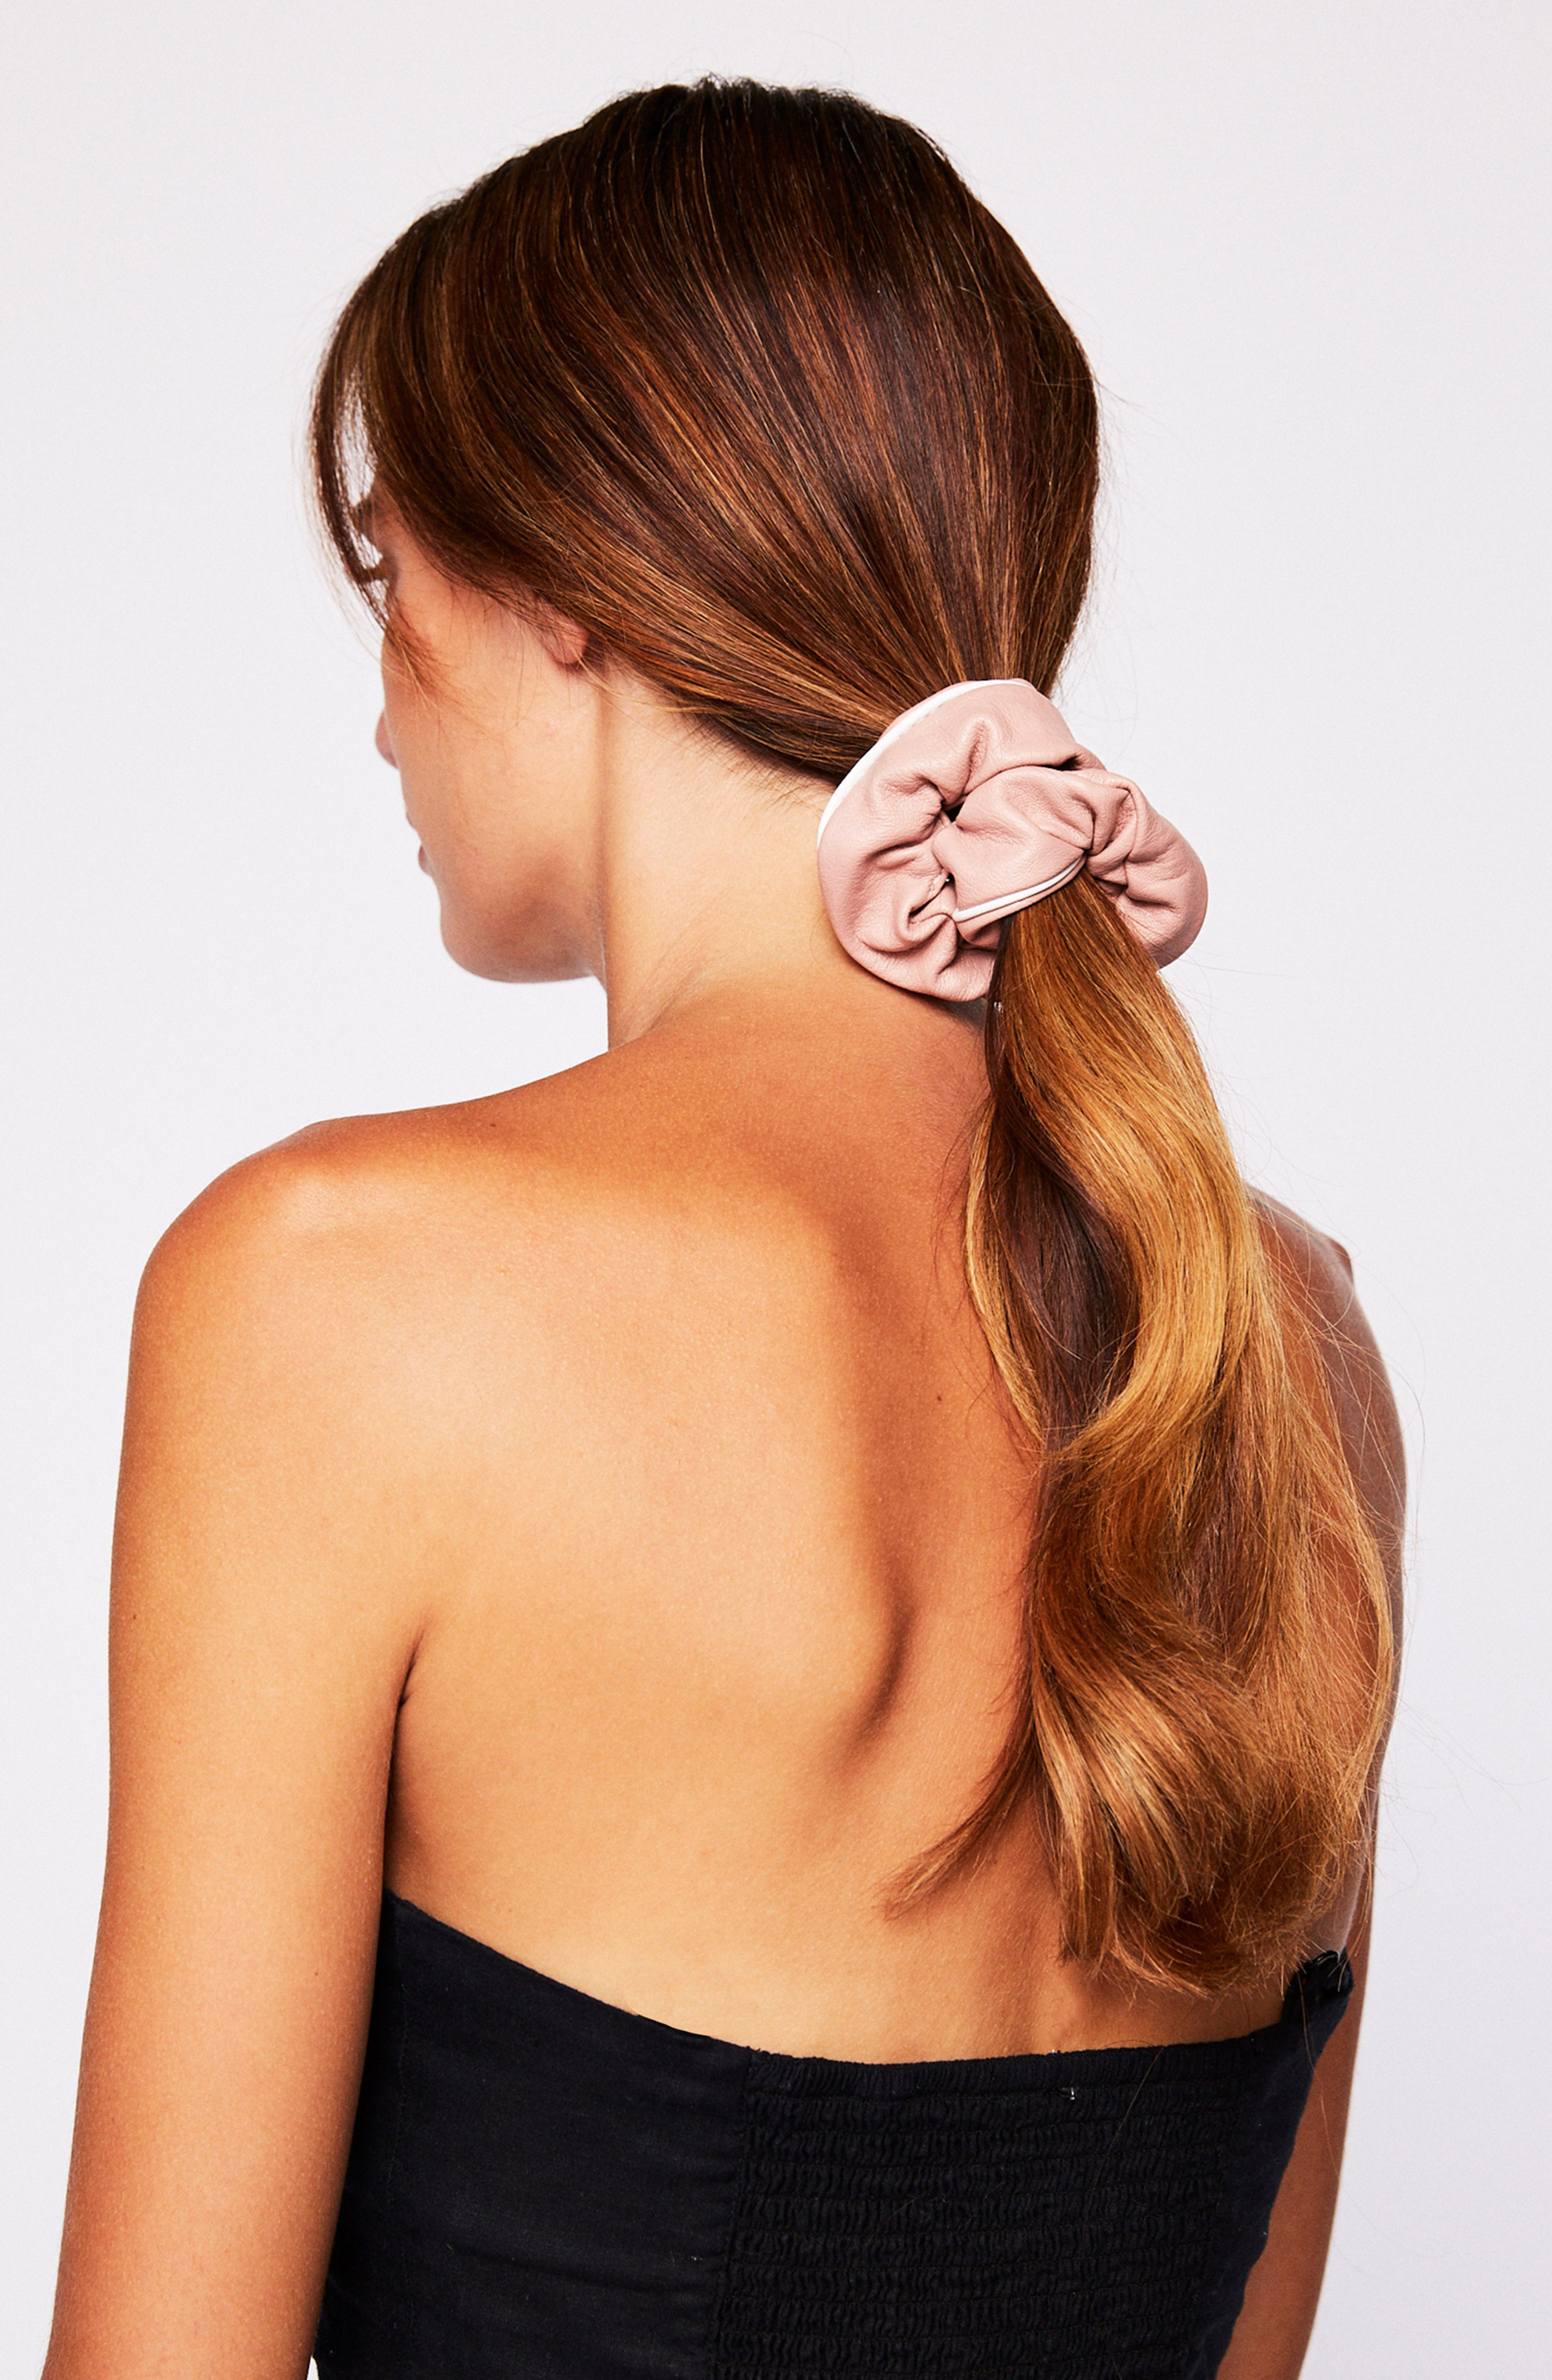 NFC-A-602-Pink-Clueless-Faux-Leather-Scrunchie.jpg